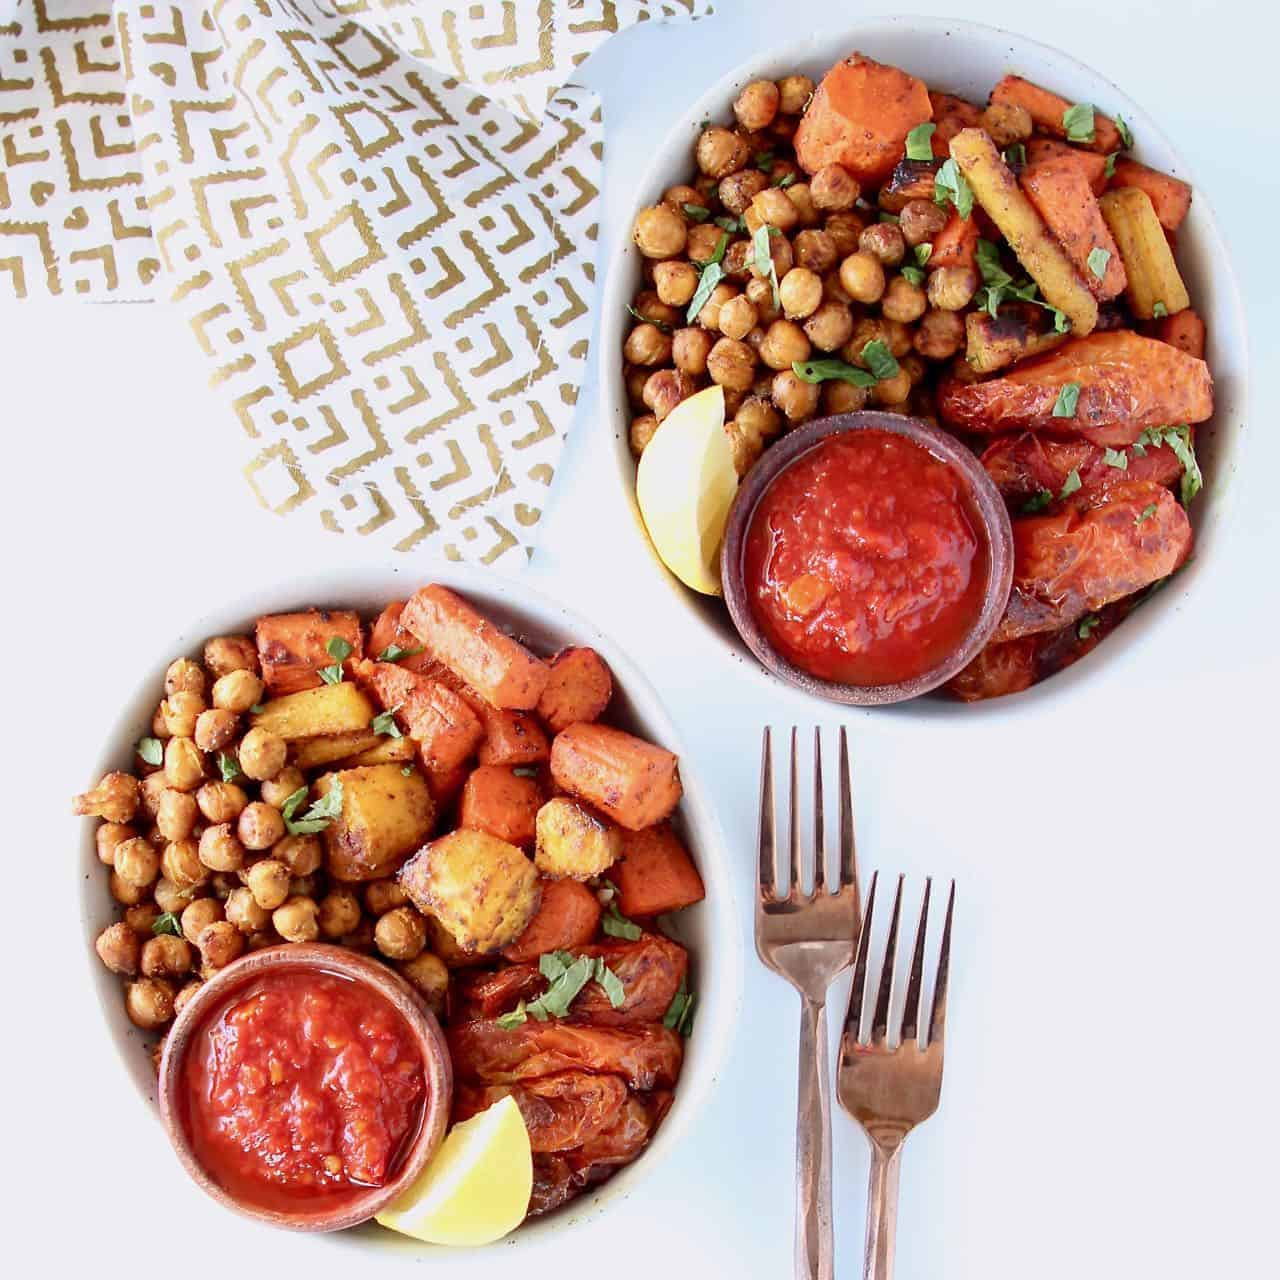 Overhead image of two bowls filled with chickpeas, carrots, tomatoes and lemon wedge